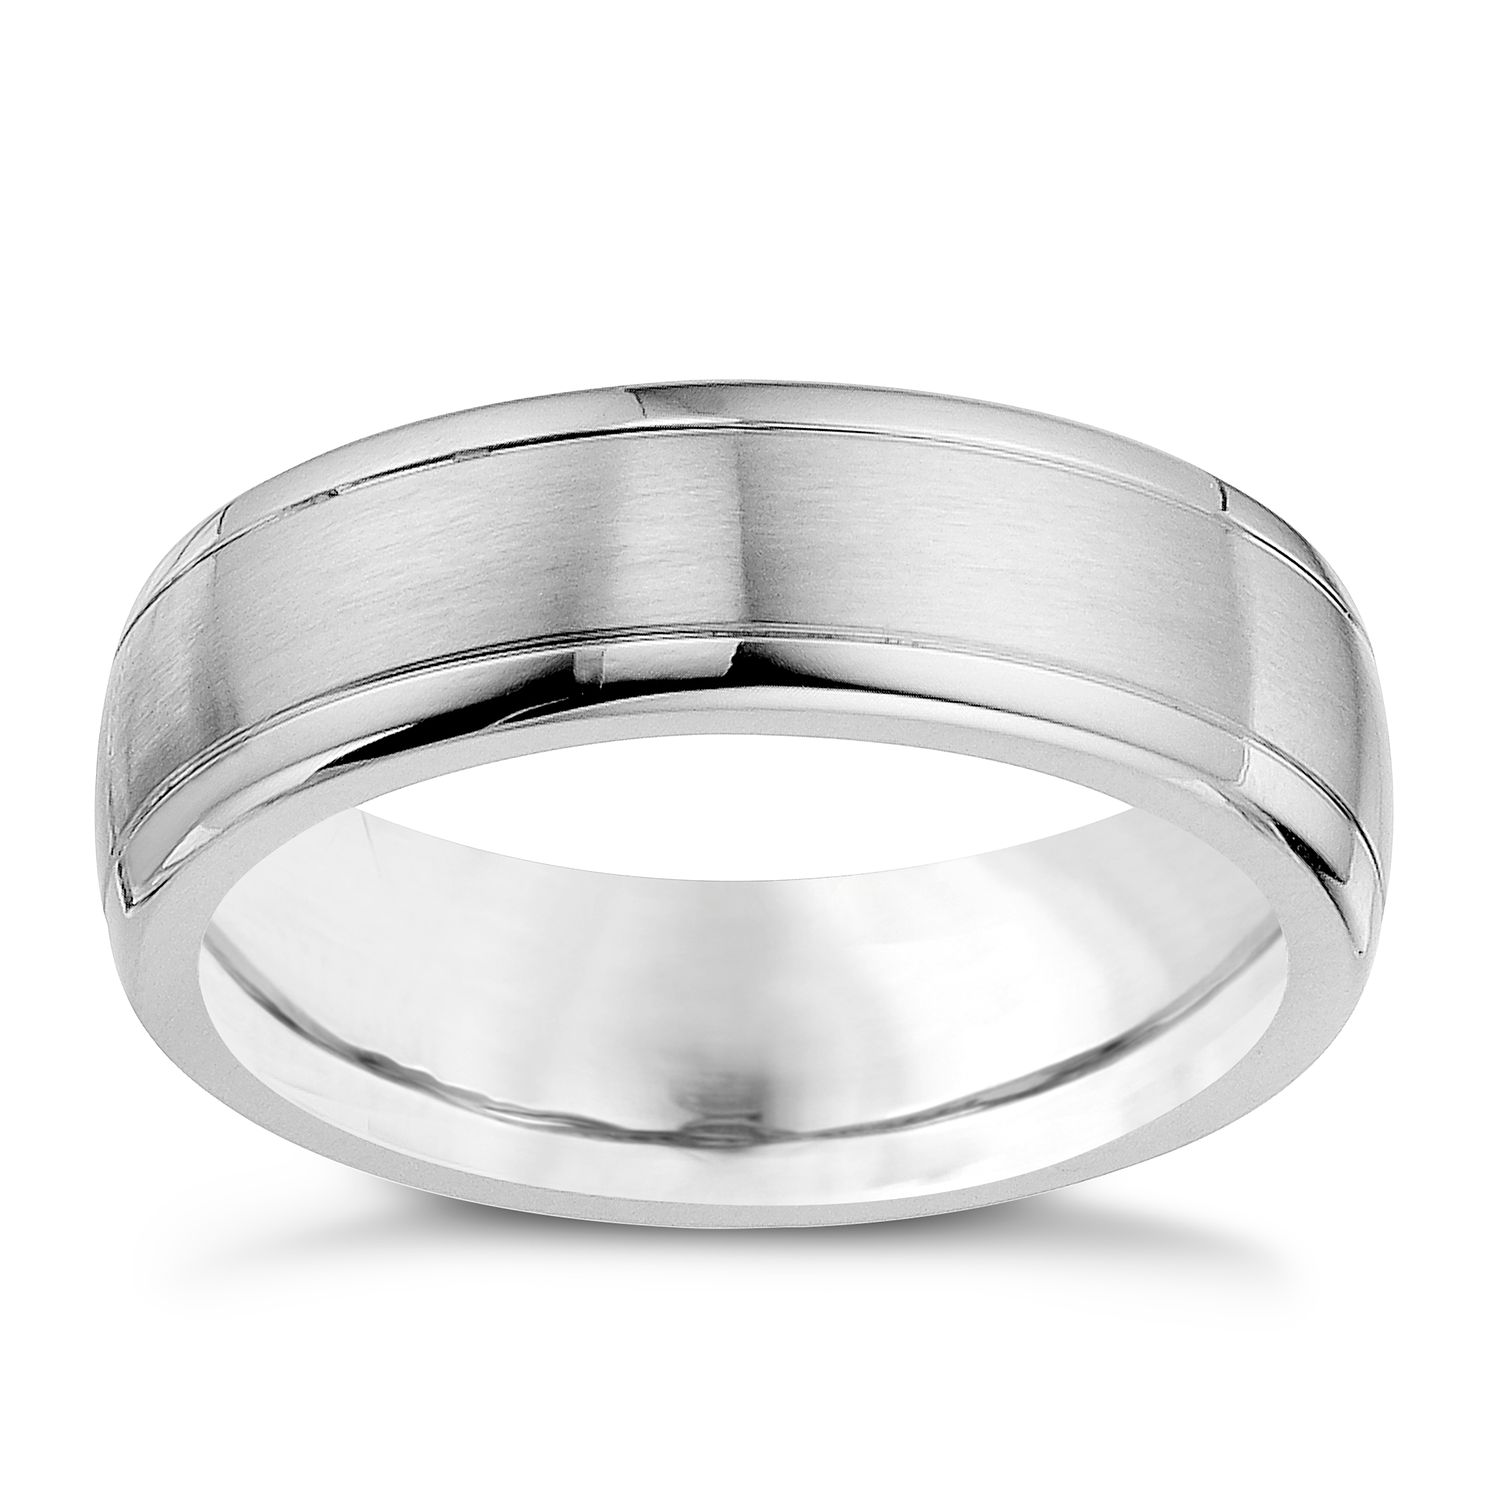 Cobalt Satin Polished 7mm Wedding Band